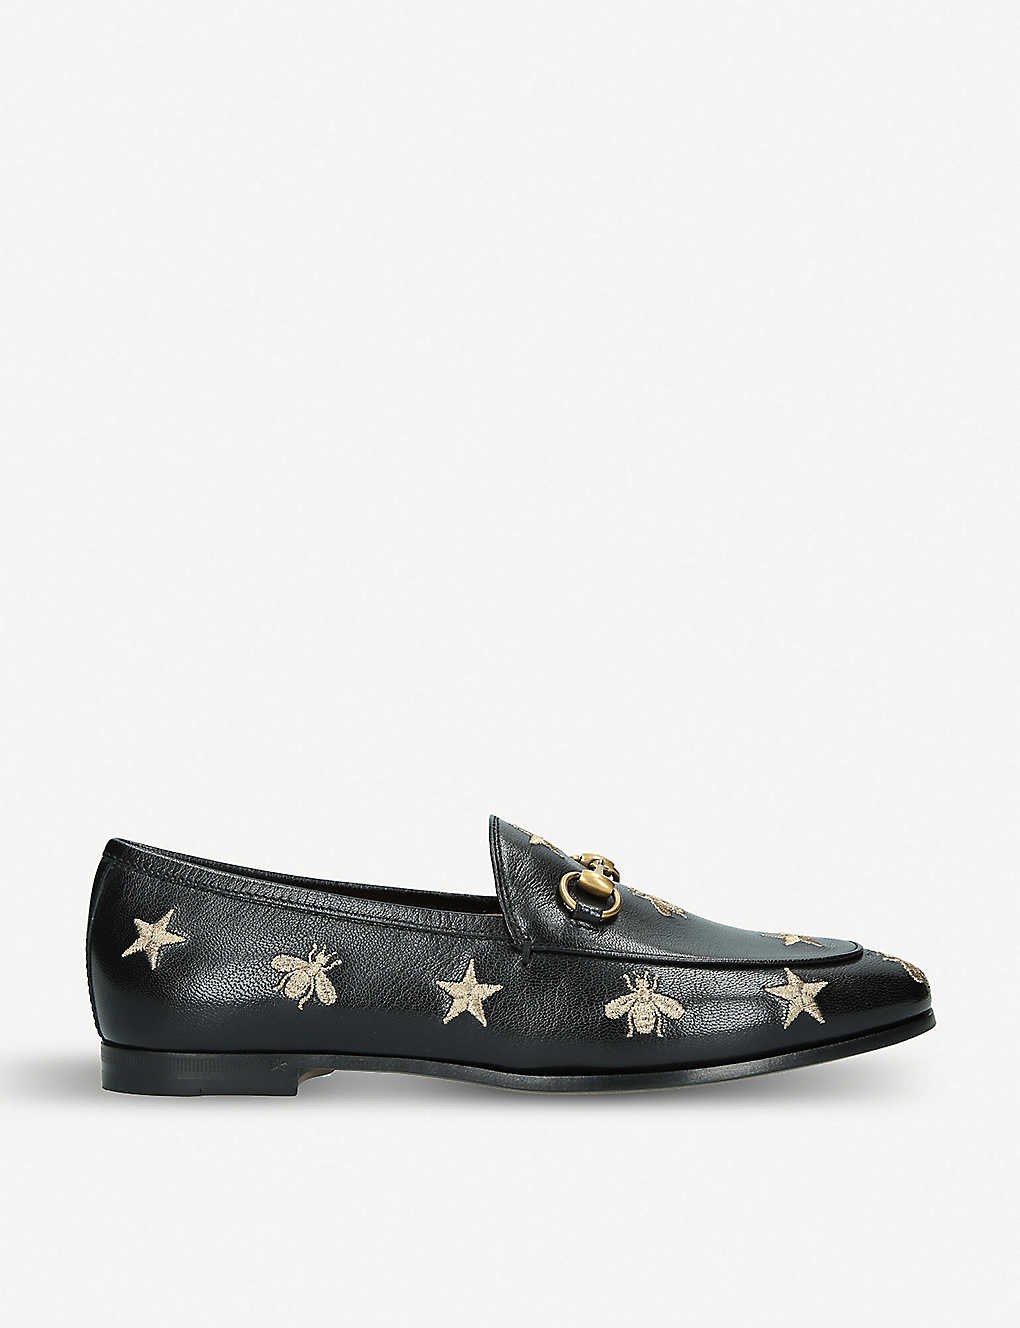 3efdf7d1e64 Jordaan embroidered leather loafers - Blkother ...